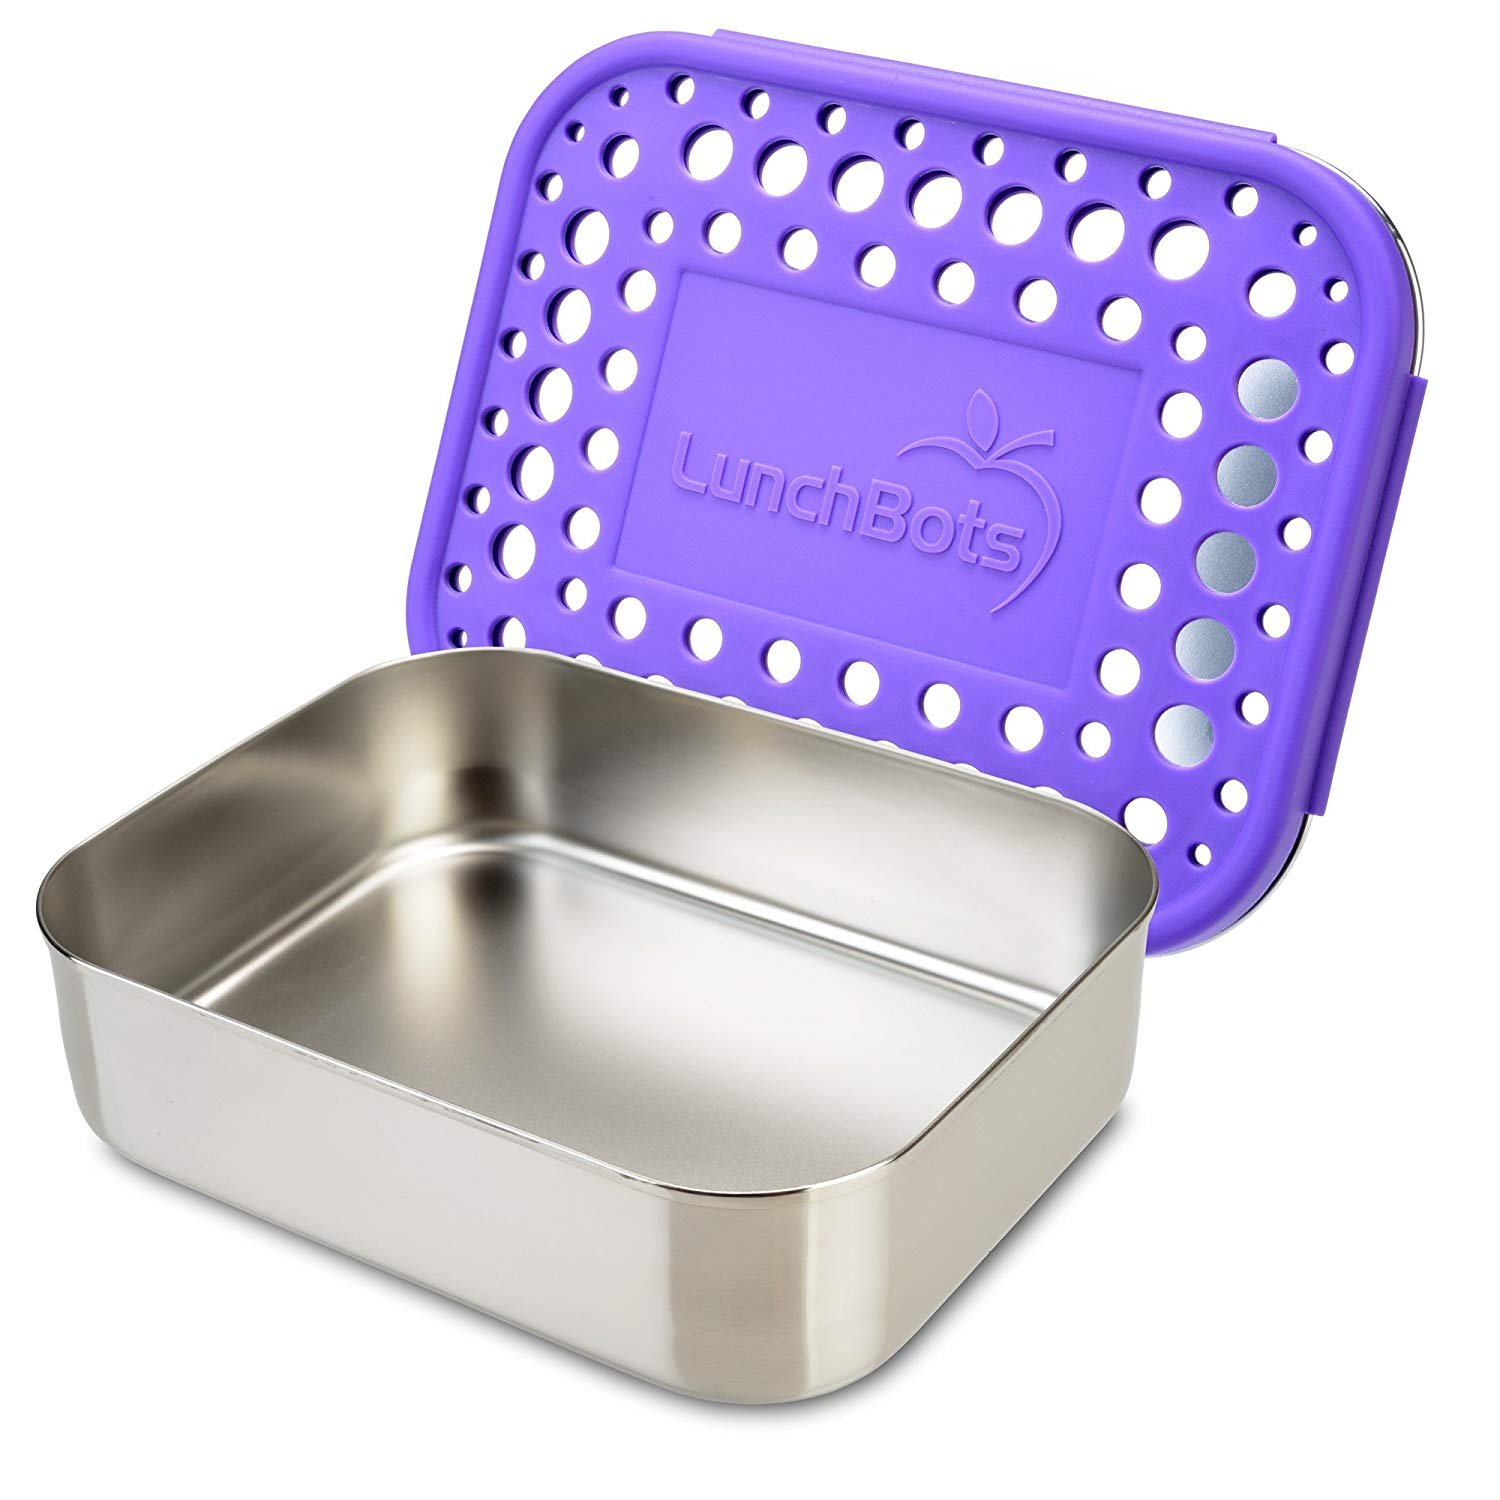 dd085d591eaf LunchBots Medium Uno Stainless Steel Sandwich Container - Open Design for  Wraps - Salads or a Small Meal - Eco-Friendly - Dishwasher Safe and  BPA-Free ...